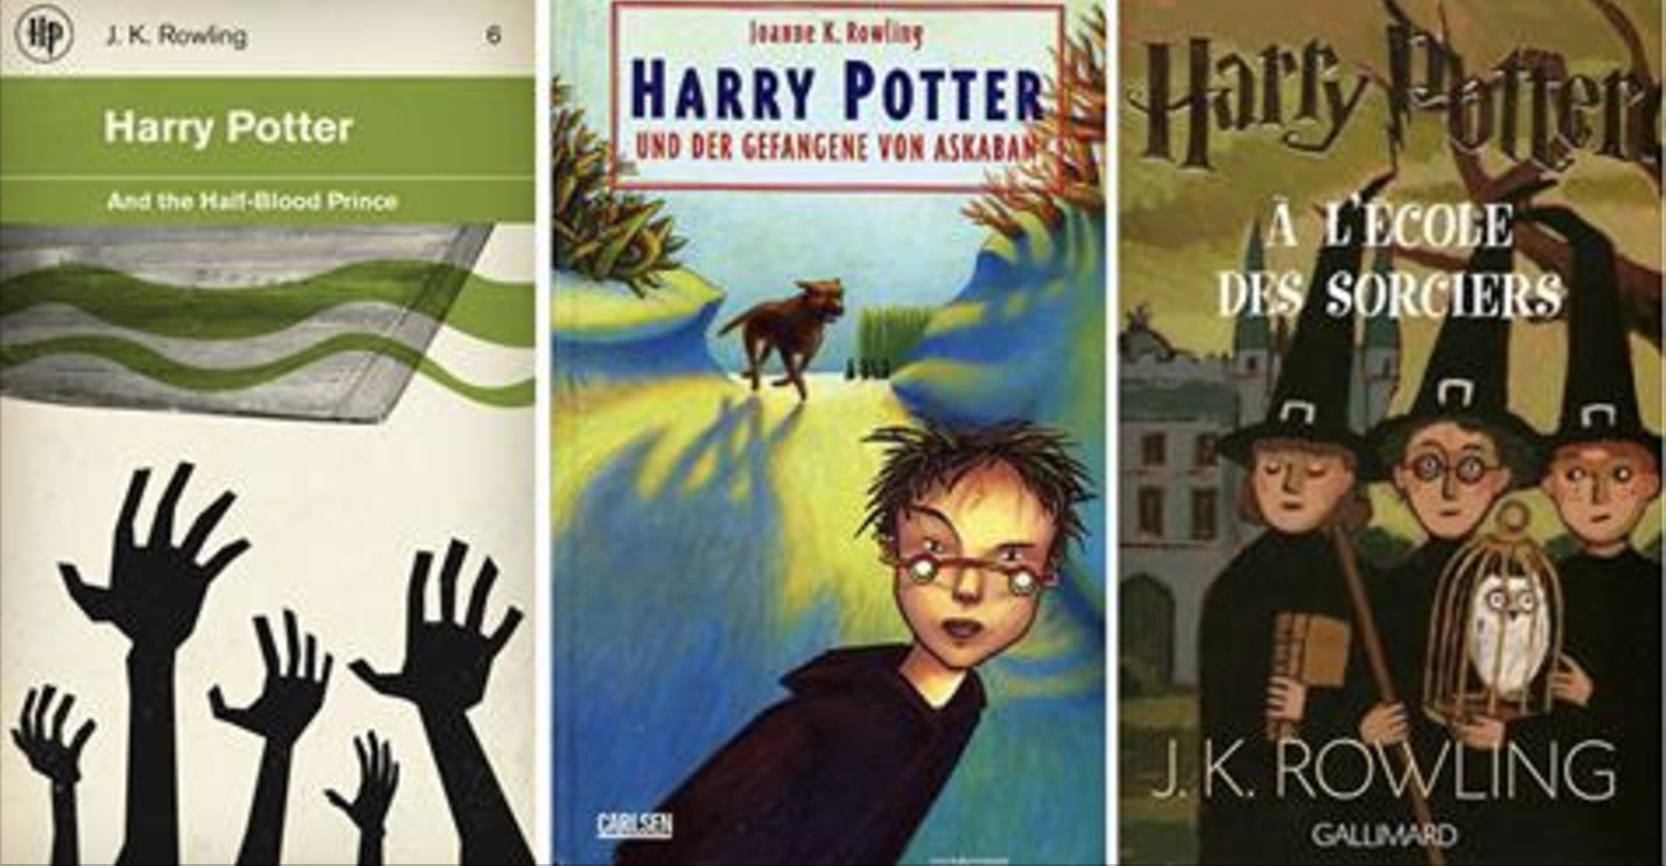 Harry Potter Book Covers Around The World ~ Magical harry potter book covers from around the